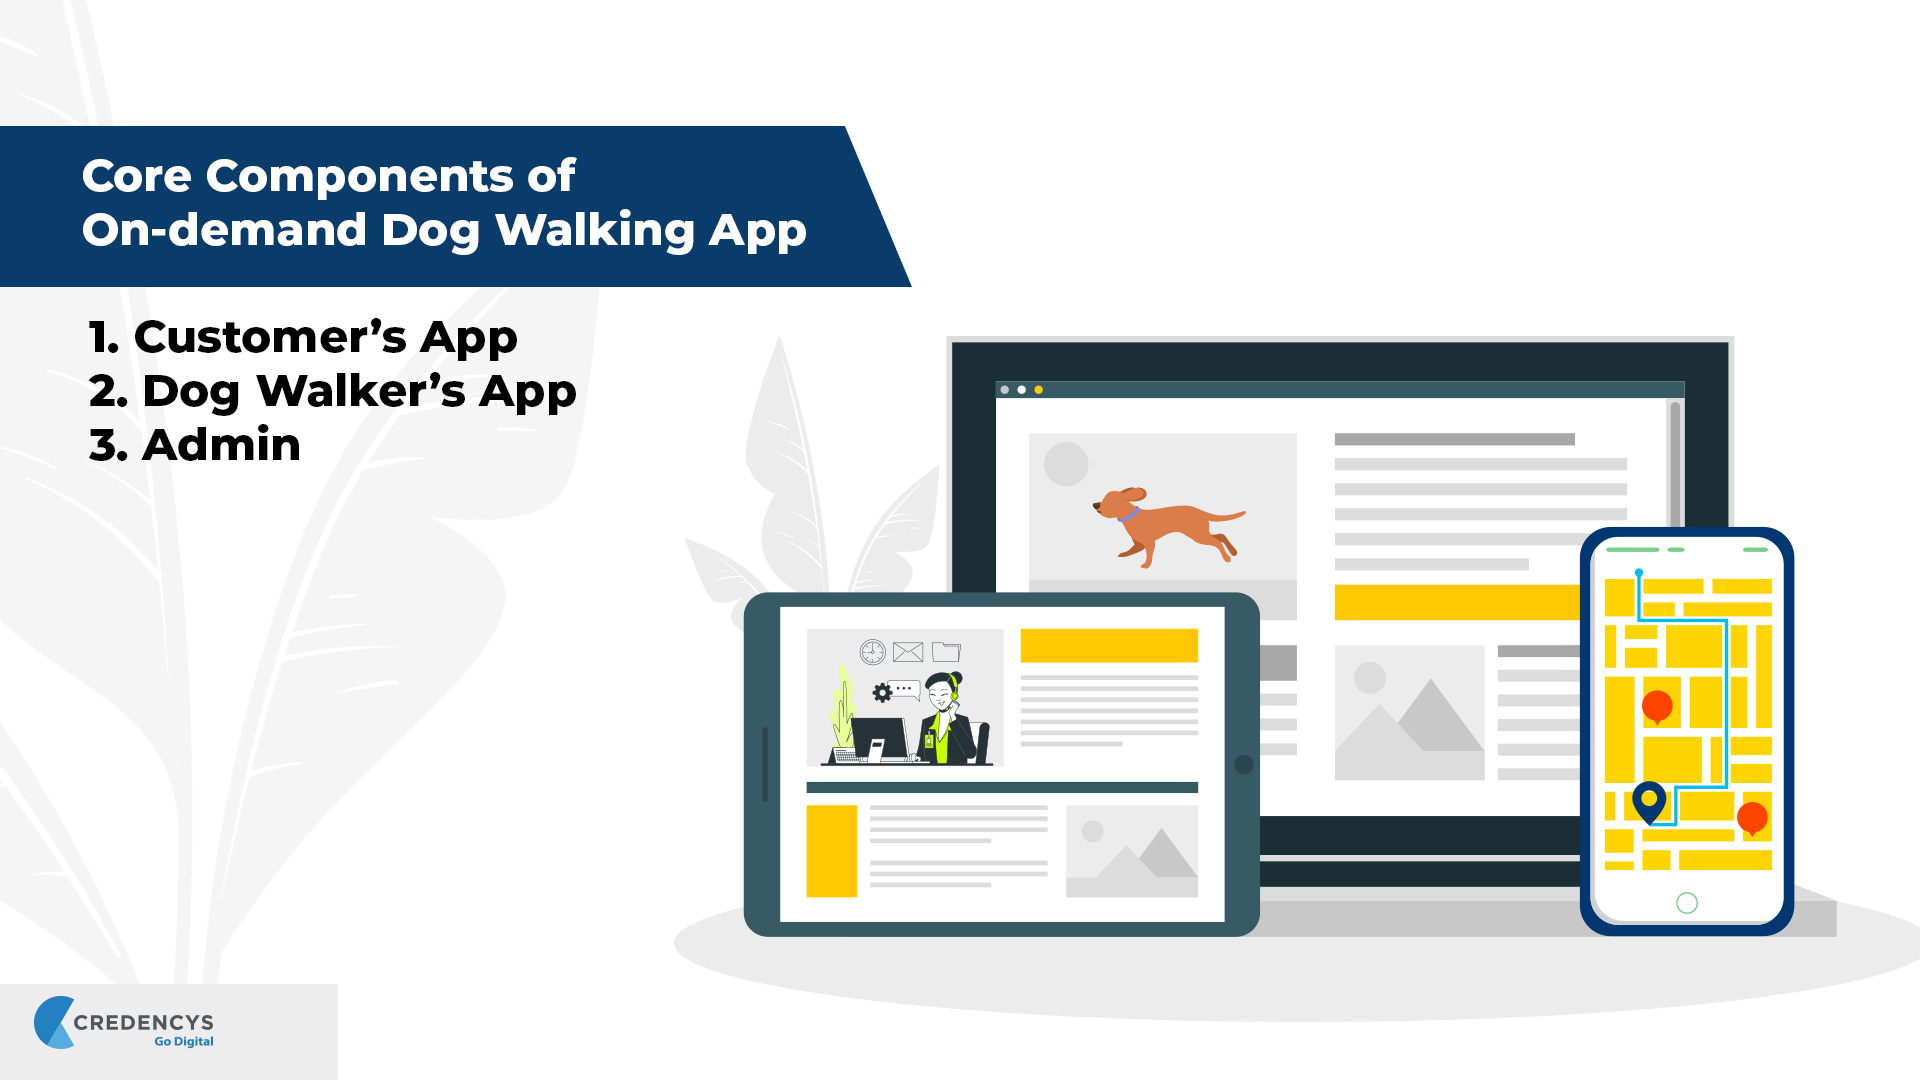 Core Components of On-demand Dog Walking App